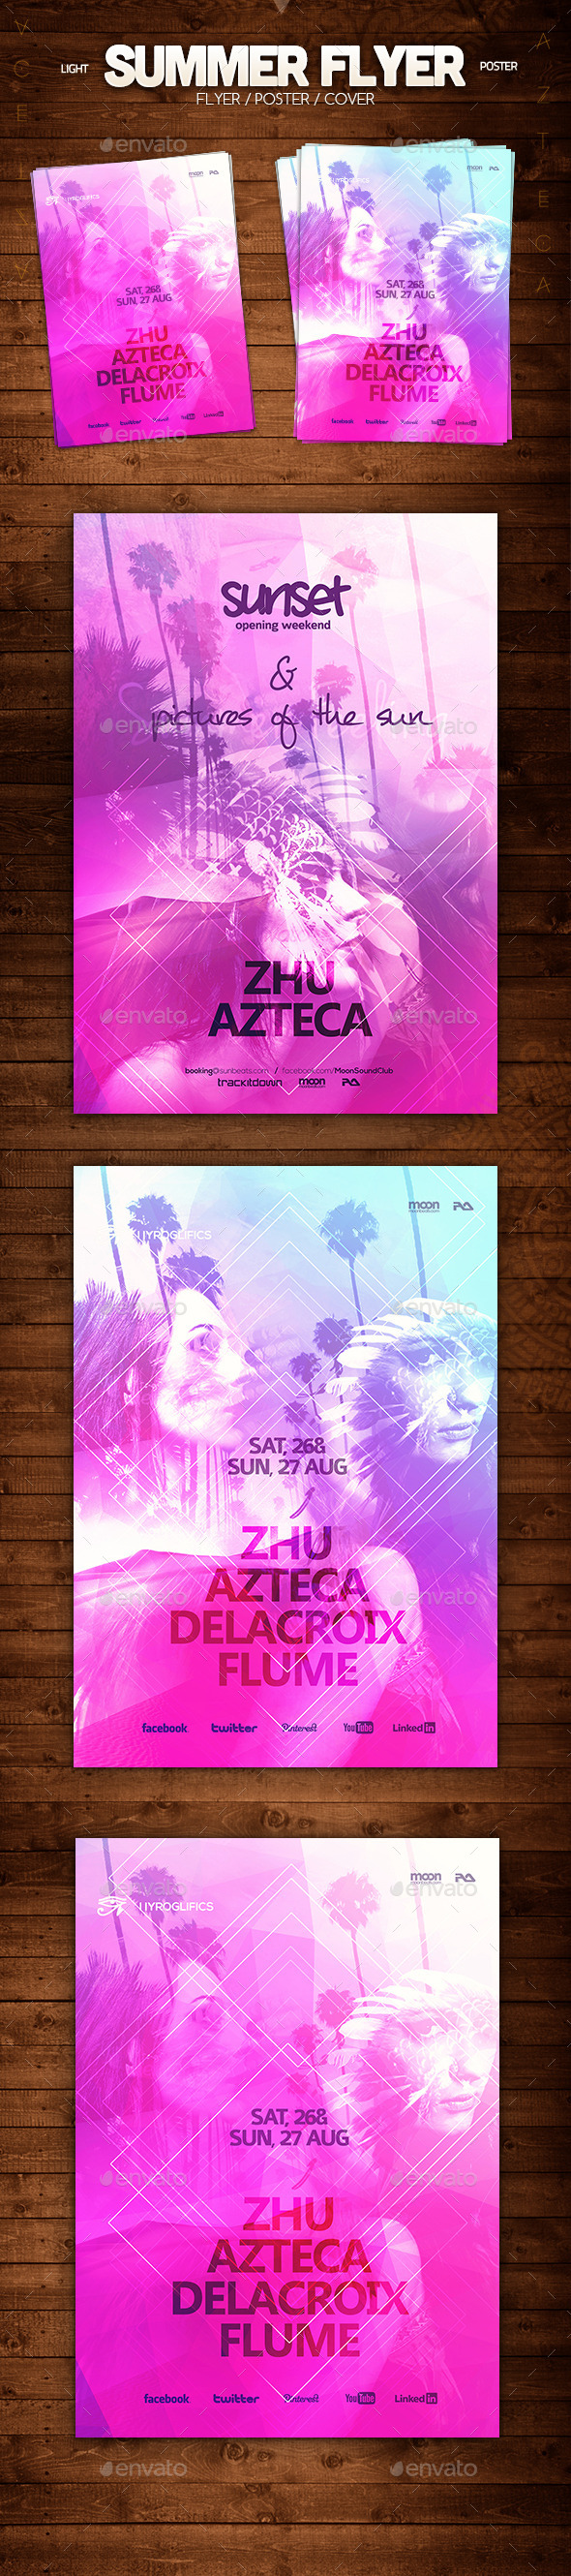 GraphicRiver Summer Flyer 8842385